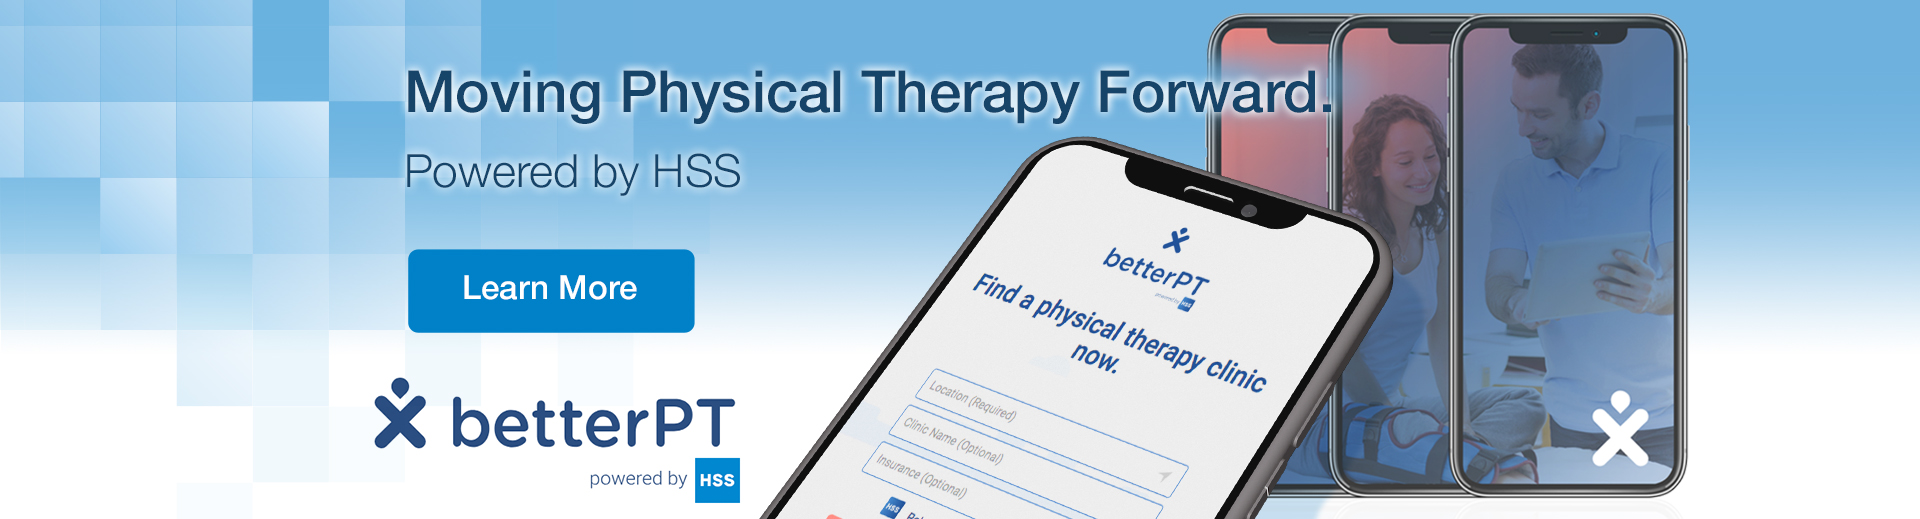 Mobile phone with BetterPT application. And text on image: Moving physical therapy forward. Powered by HSS. Click to learn more about BetterPT